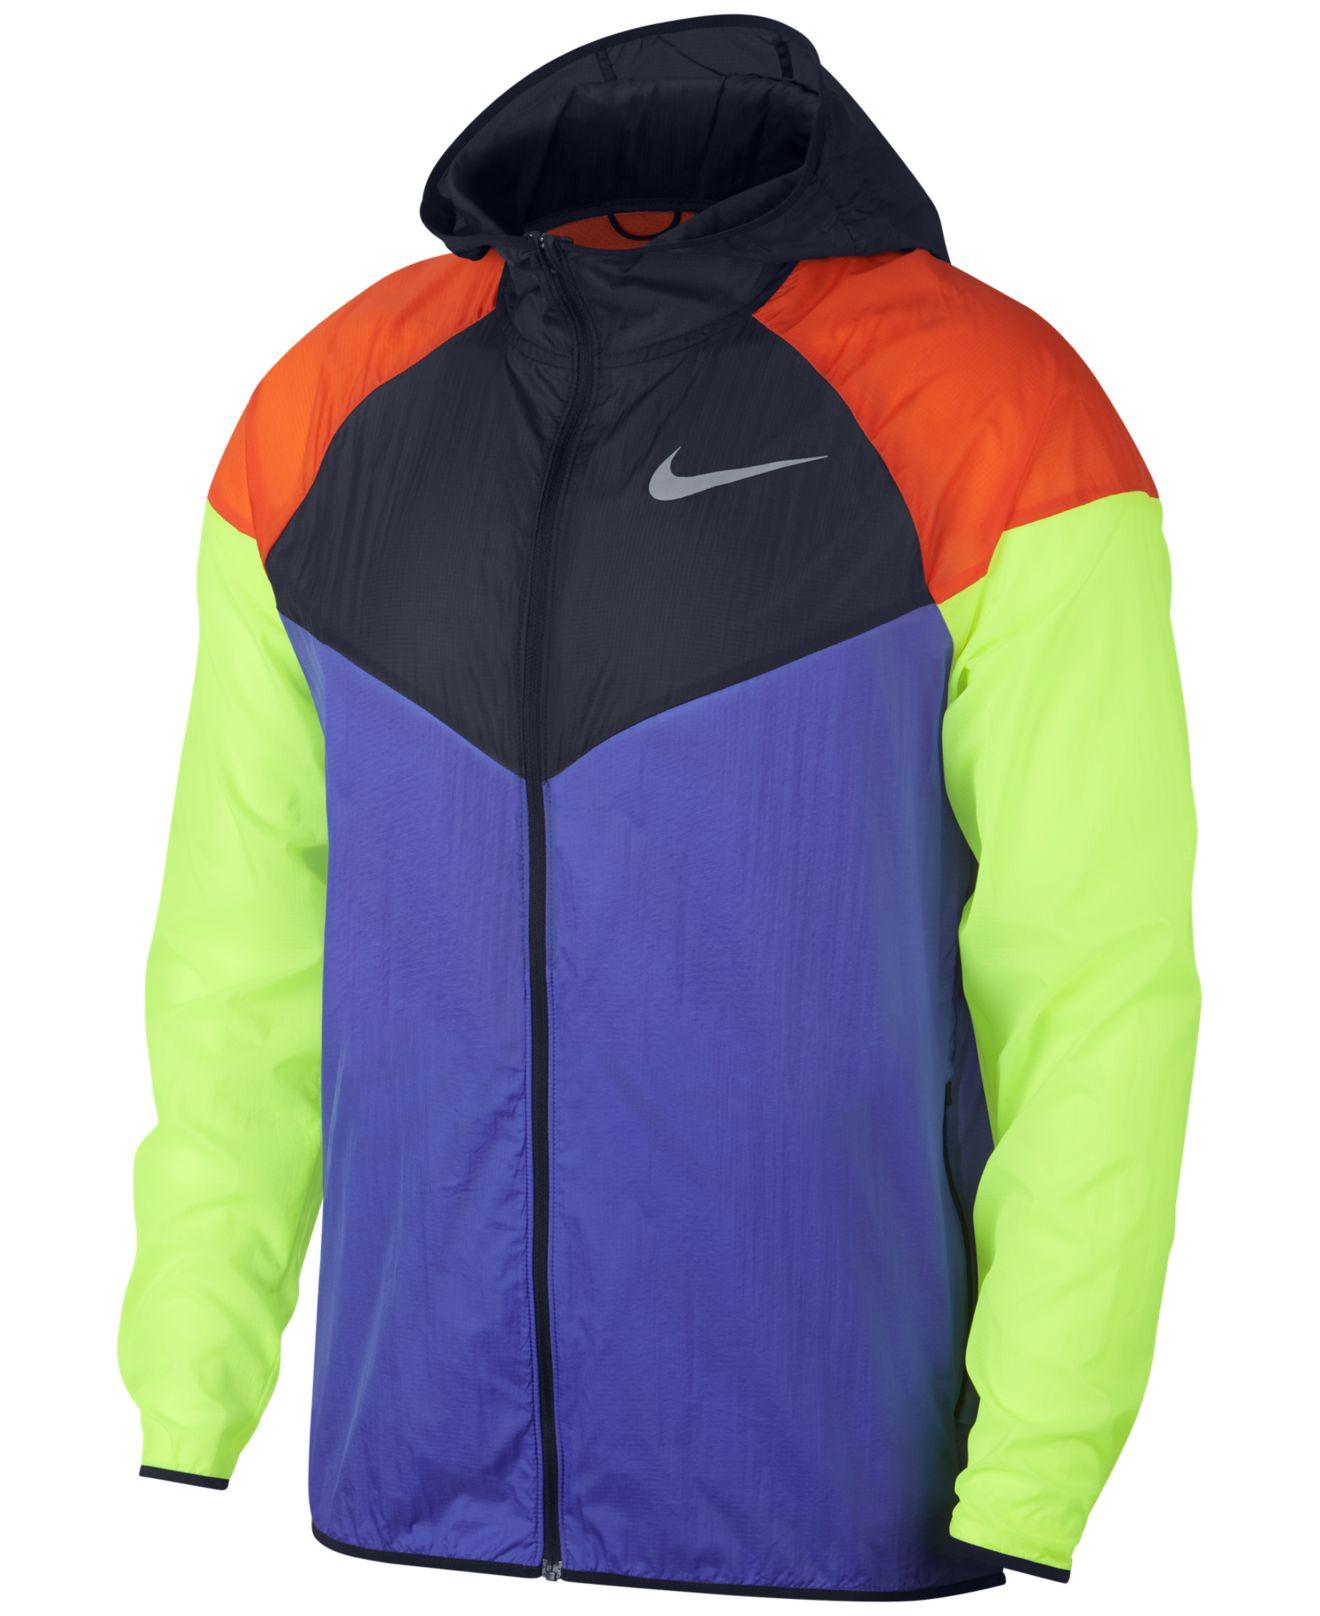 946d3f17f2 Lyst - Nike Colorblocked Water-repellent Windrunner Jacket in Purple ...